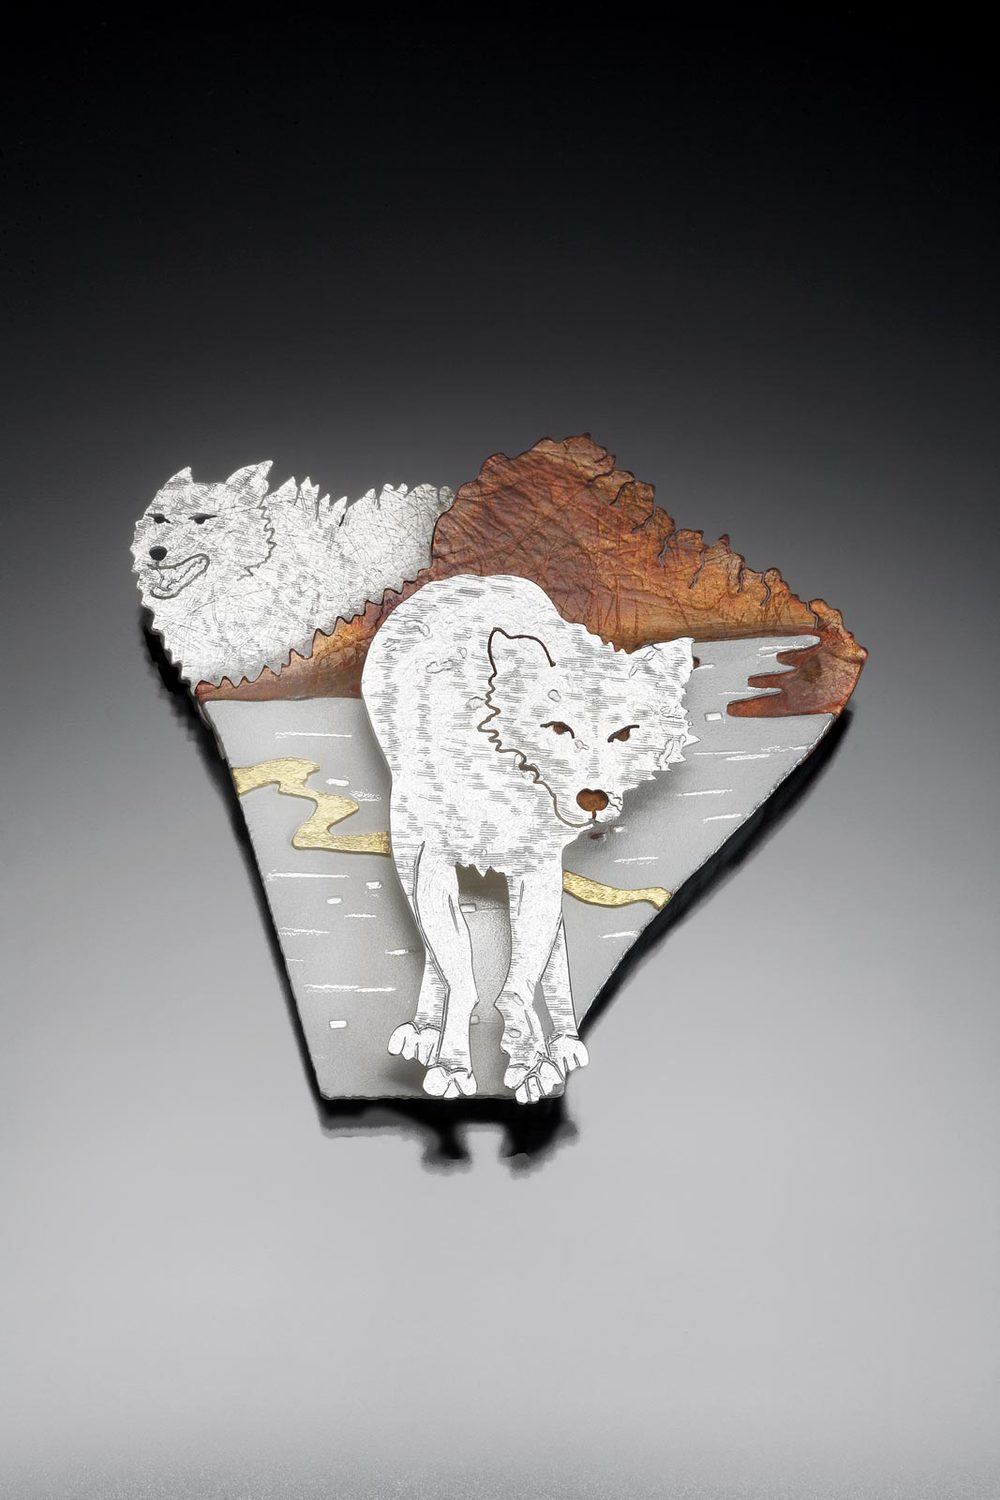 WOLF IN BLACK SPRUCE IV: OUR LAND, OUR ANCESTORS brooch/pendant of sterling silver, copper, eighteen karat gold, 5.87 x 6.19 x 1.27 centimeters, 2011.